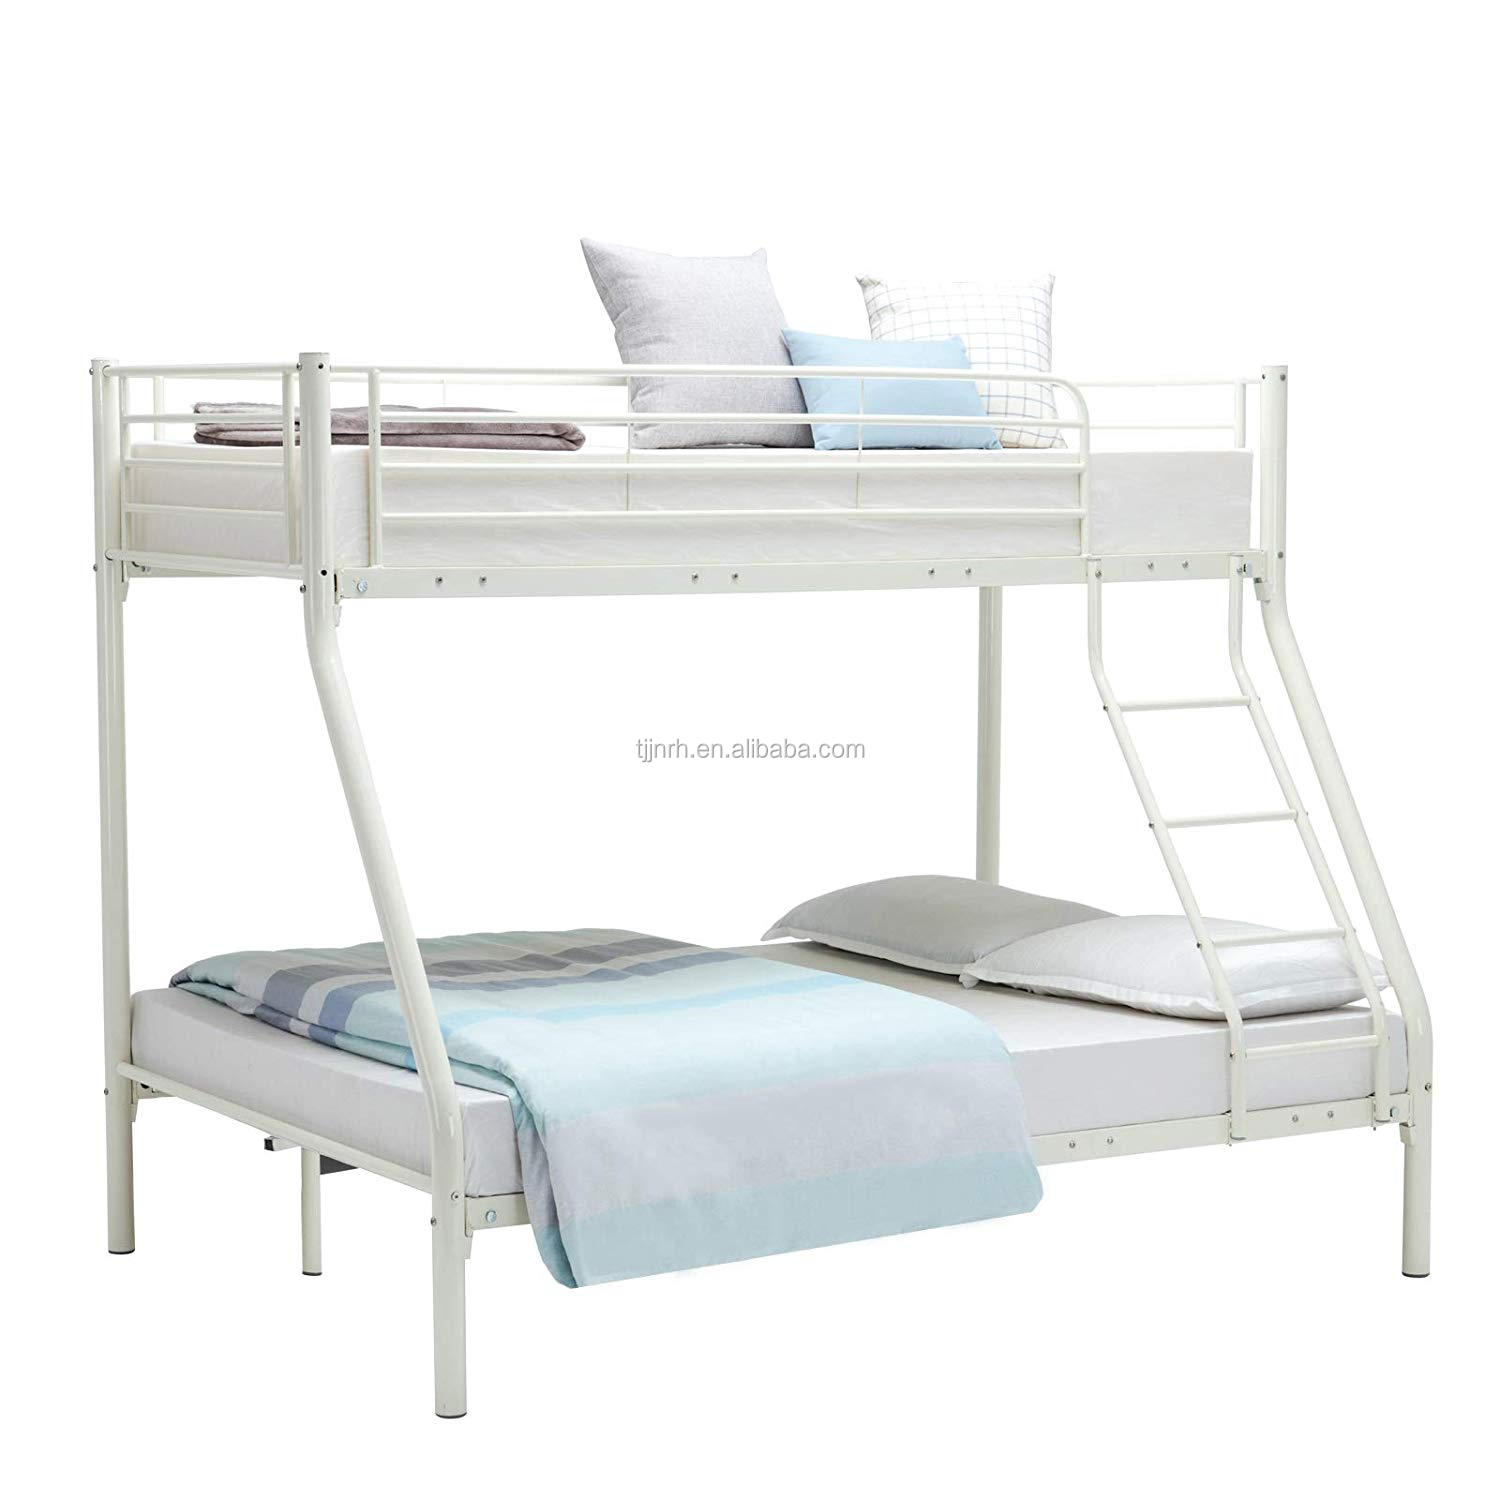 Cheap Triple Single Over Double Metal Bunk Bed Buy Black And White Futon Bunk Bed Twin Full 3 Sleeper Single Over Double White Metal Triple Bunk Bed Frame For Kids Children Modern Silver Finish